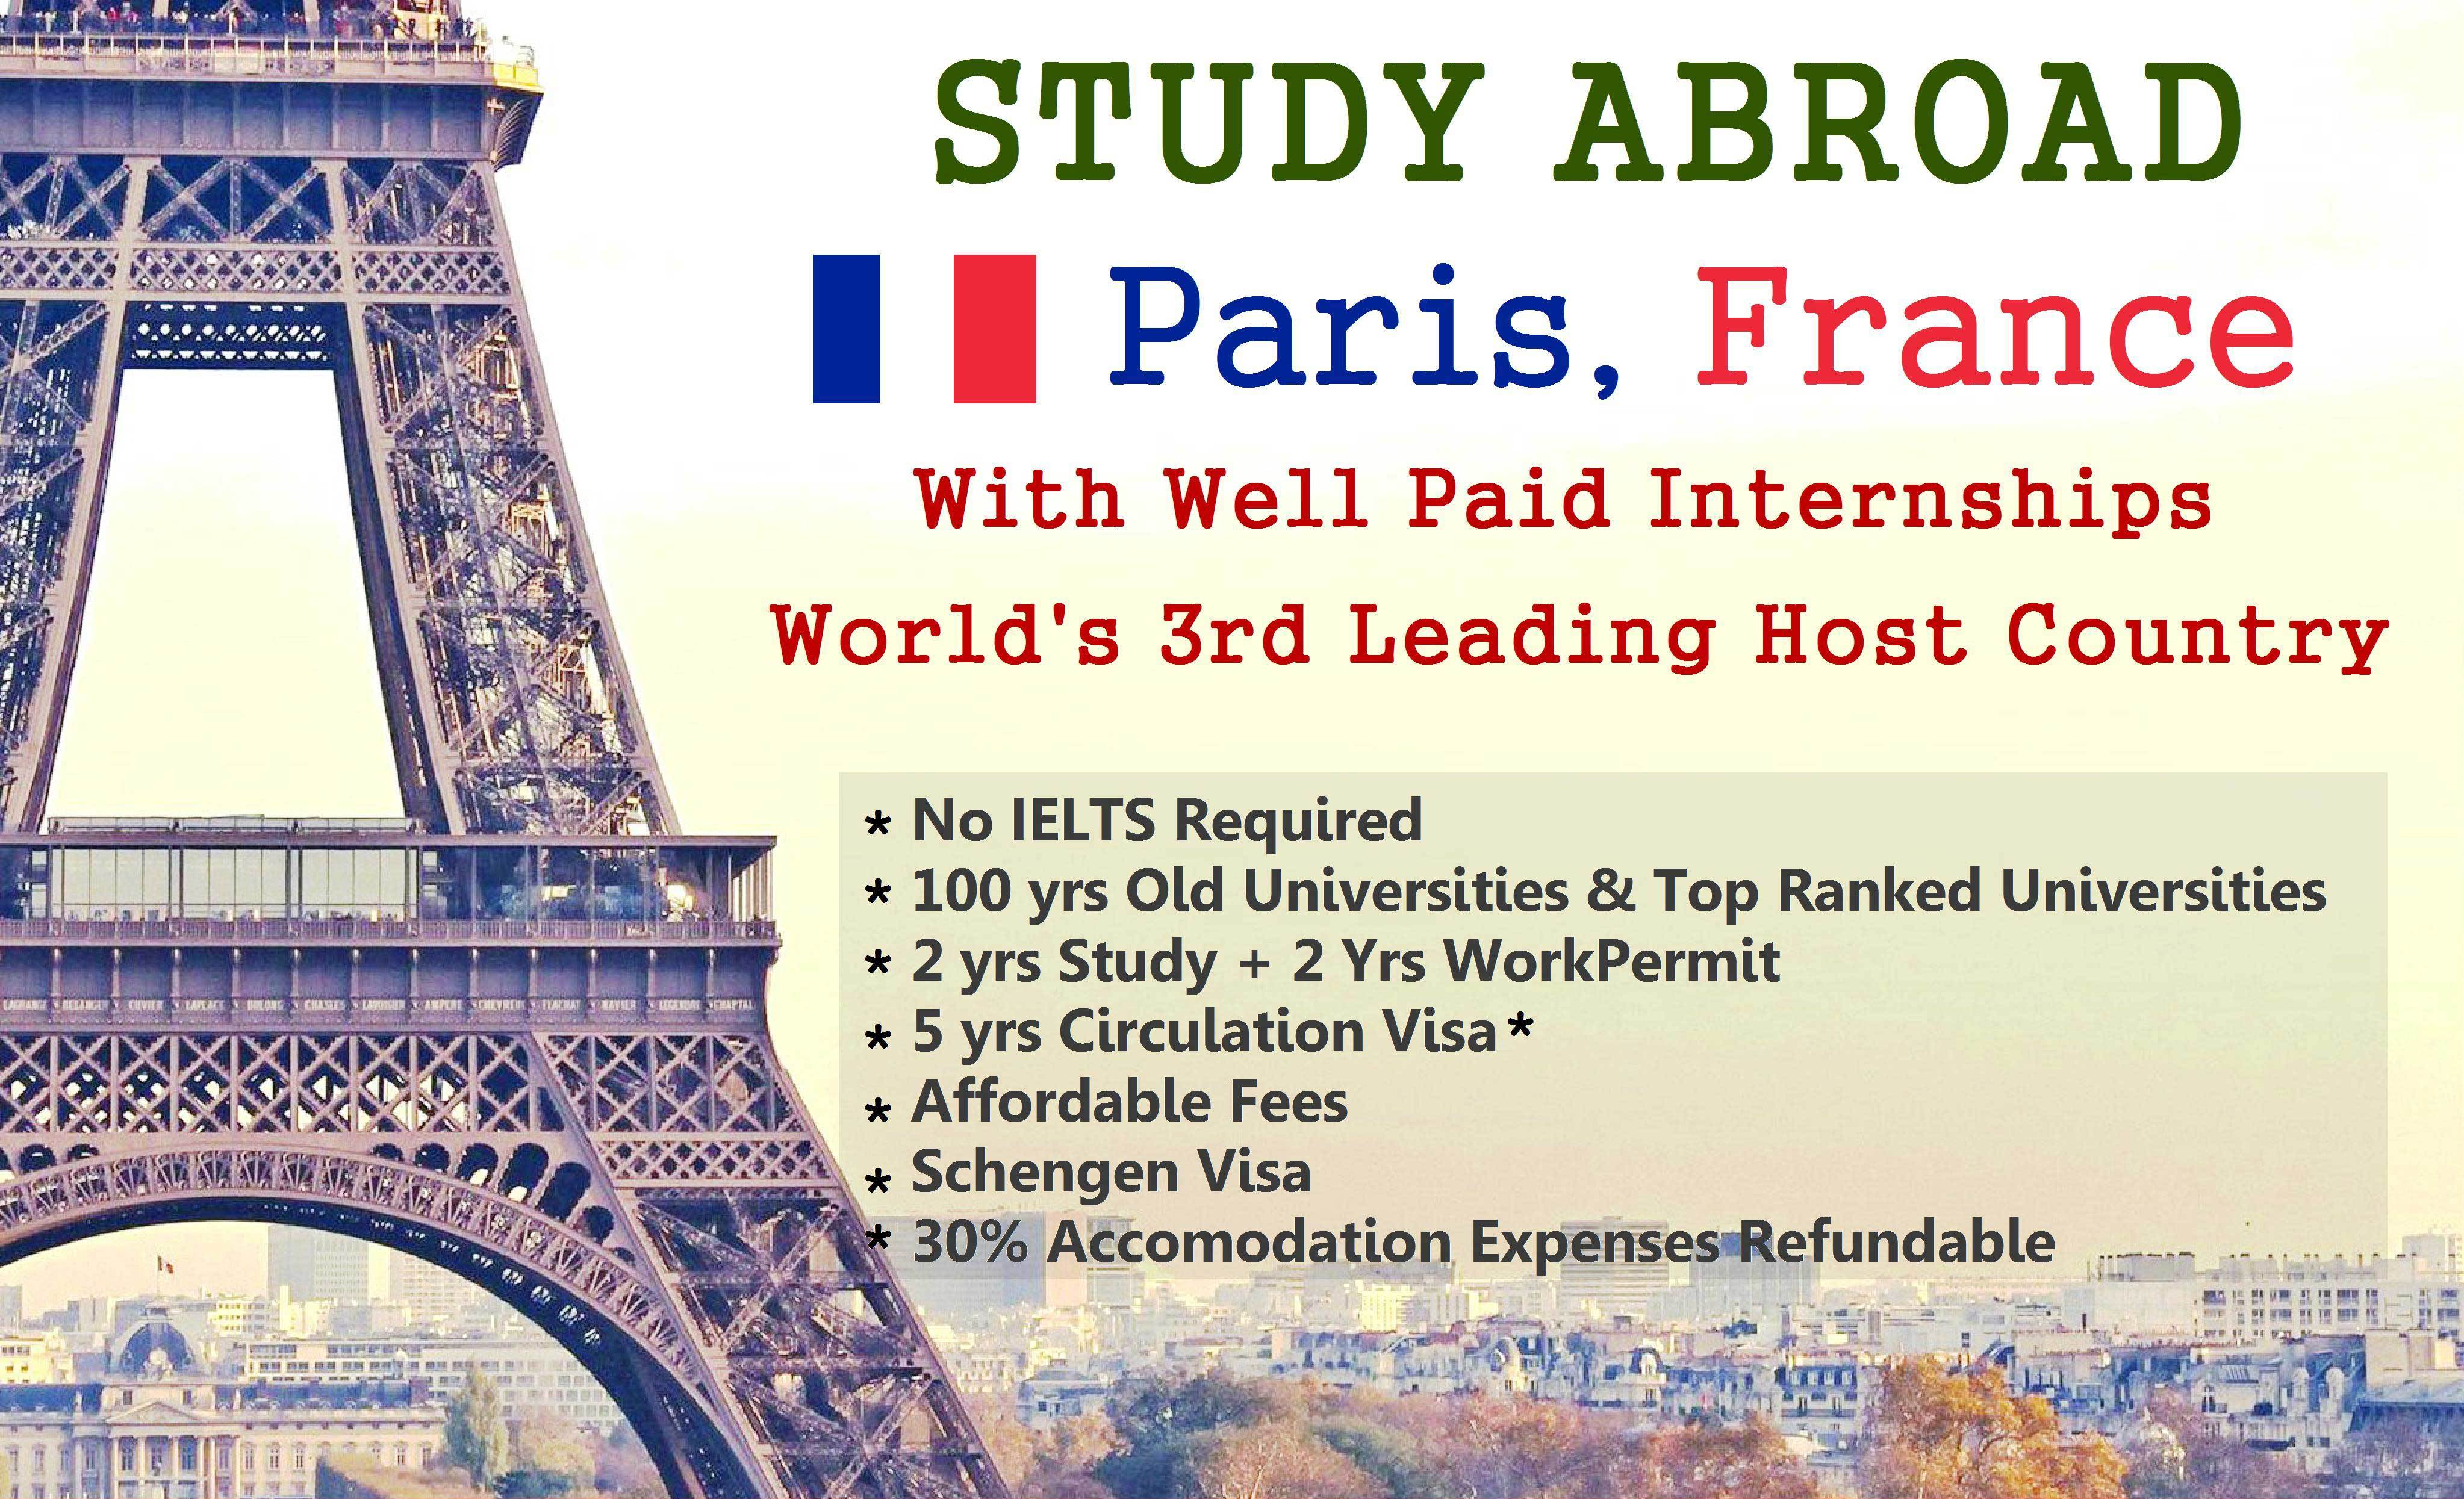 STUDY IN FRANCE Lagos company